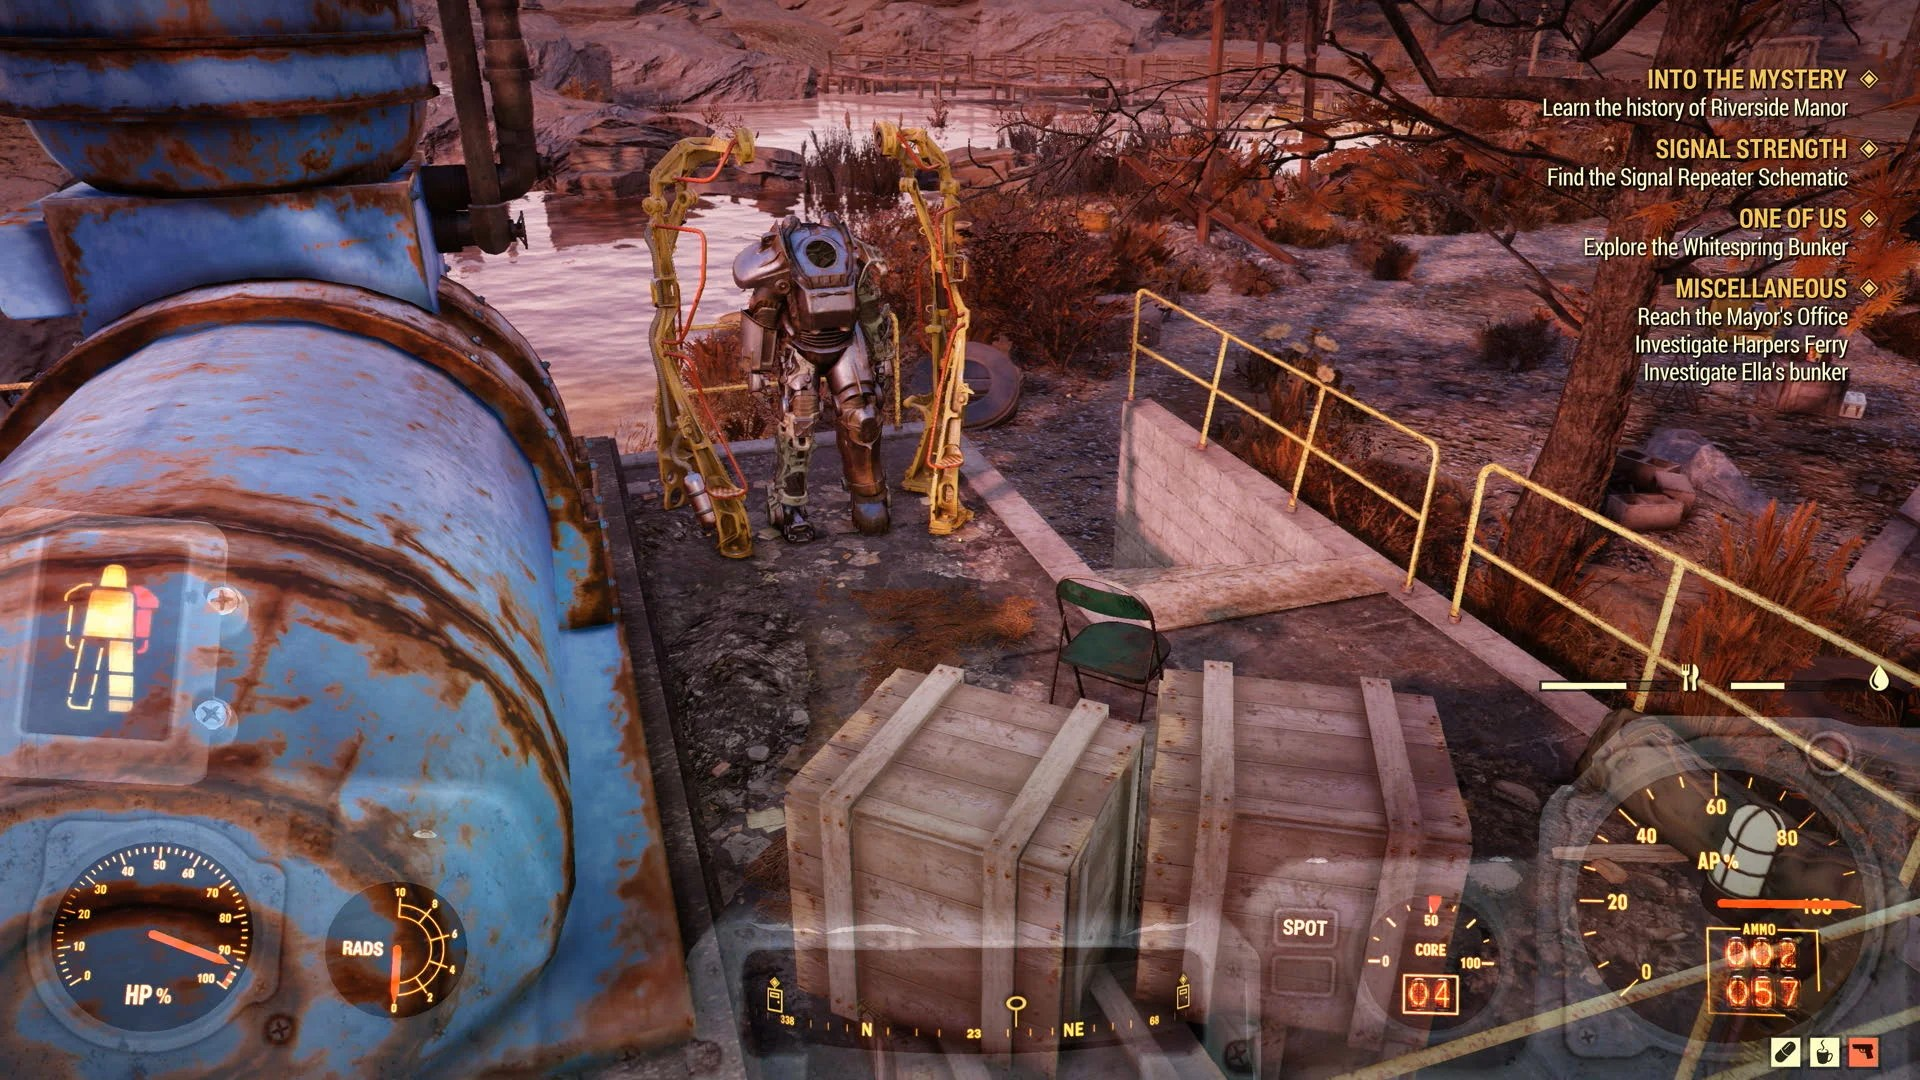 Power Armor Locations And Map Fallout 76 Wiki Guide IGN